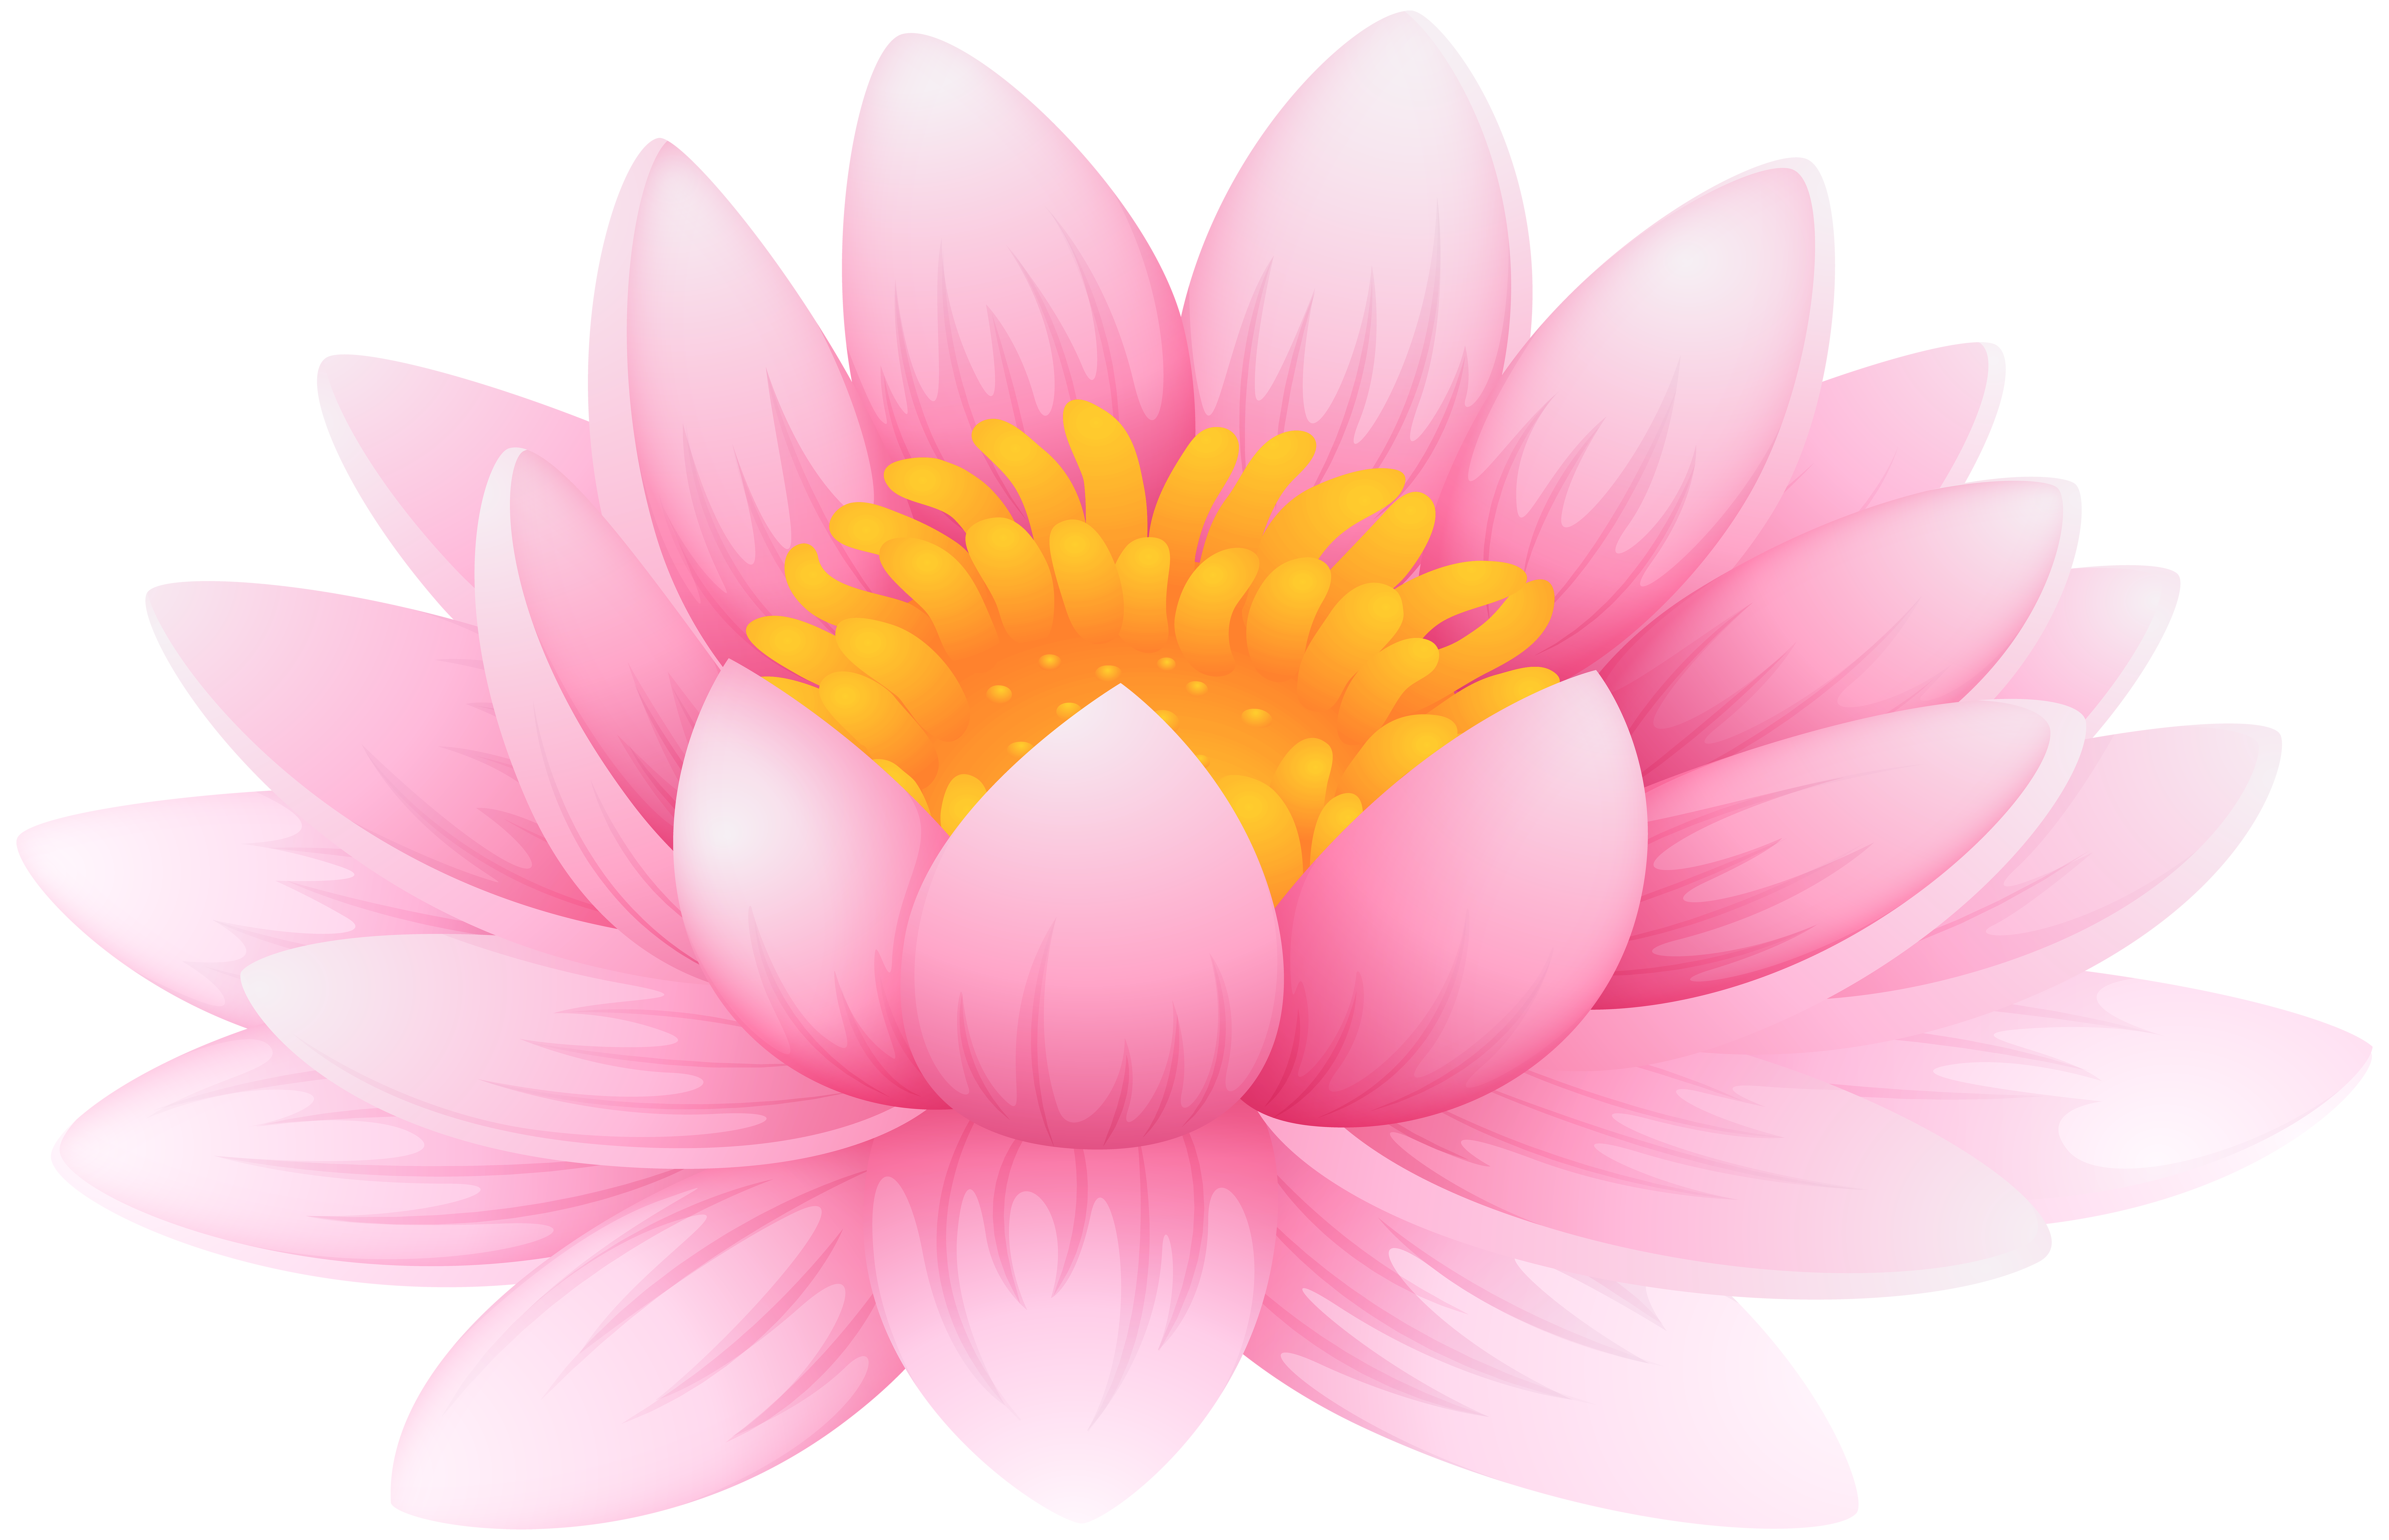 Water lily flower clipart jpg royalty free Water Lily PNG Clip Art Image | Gallery Yopriceville - High-Quality ... jpg royalty free